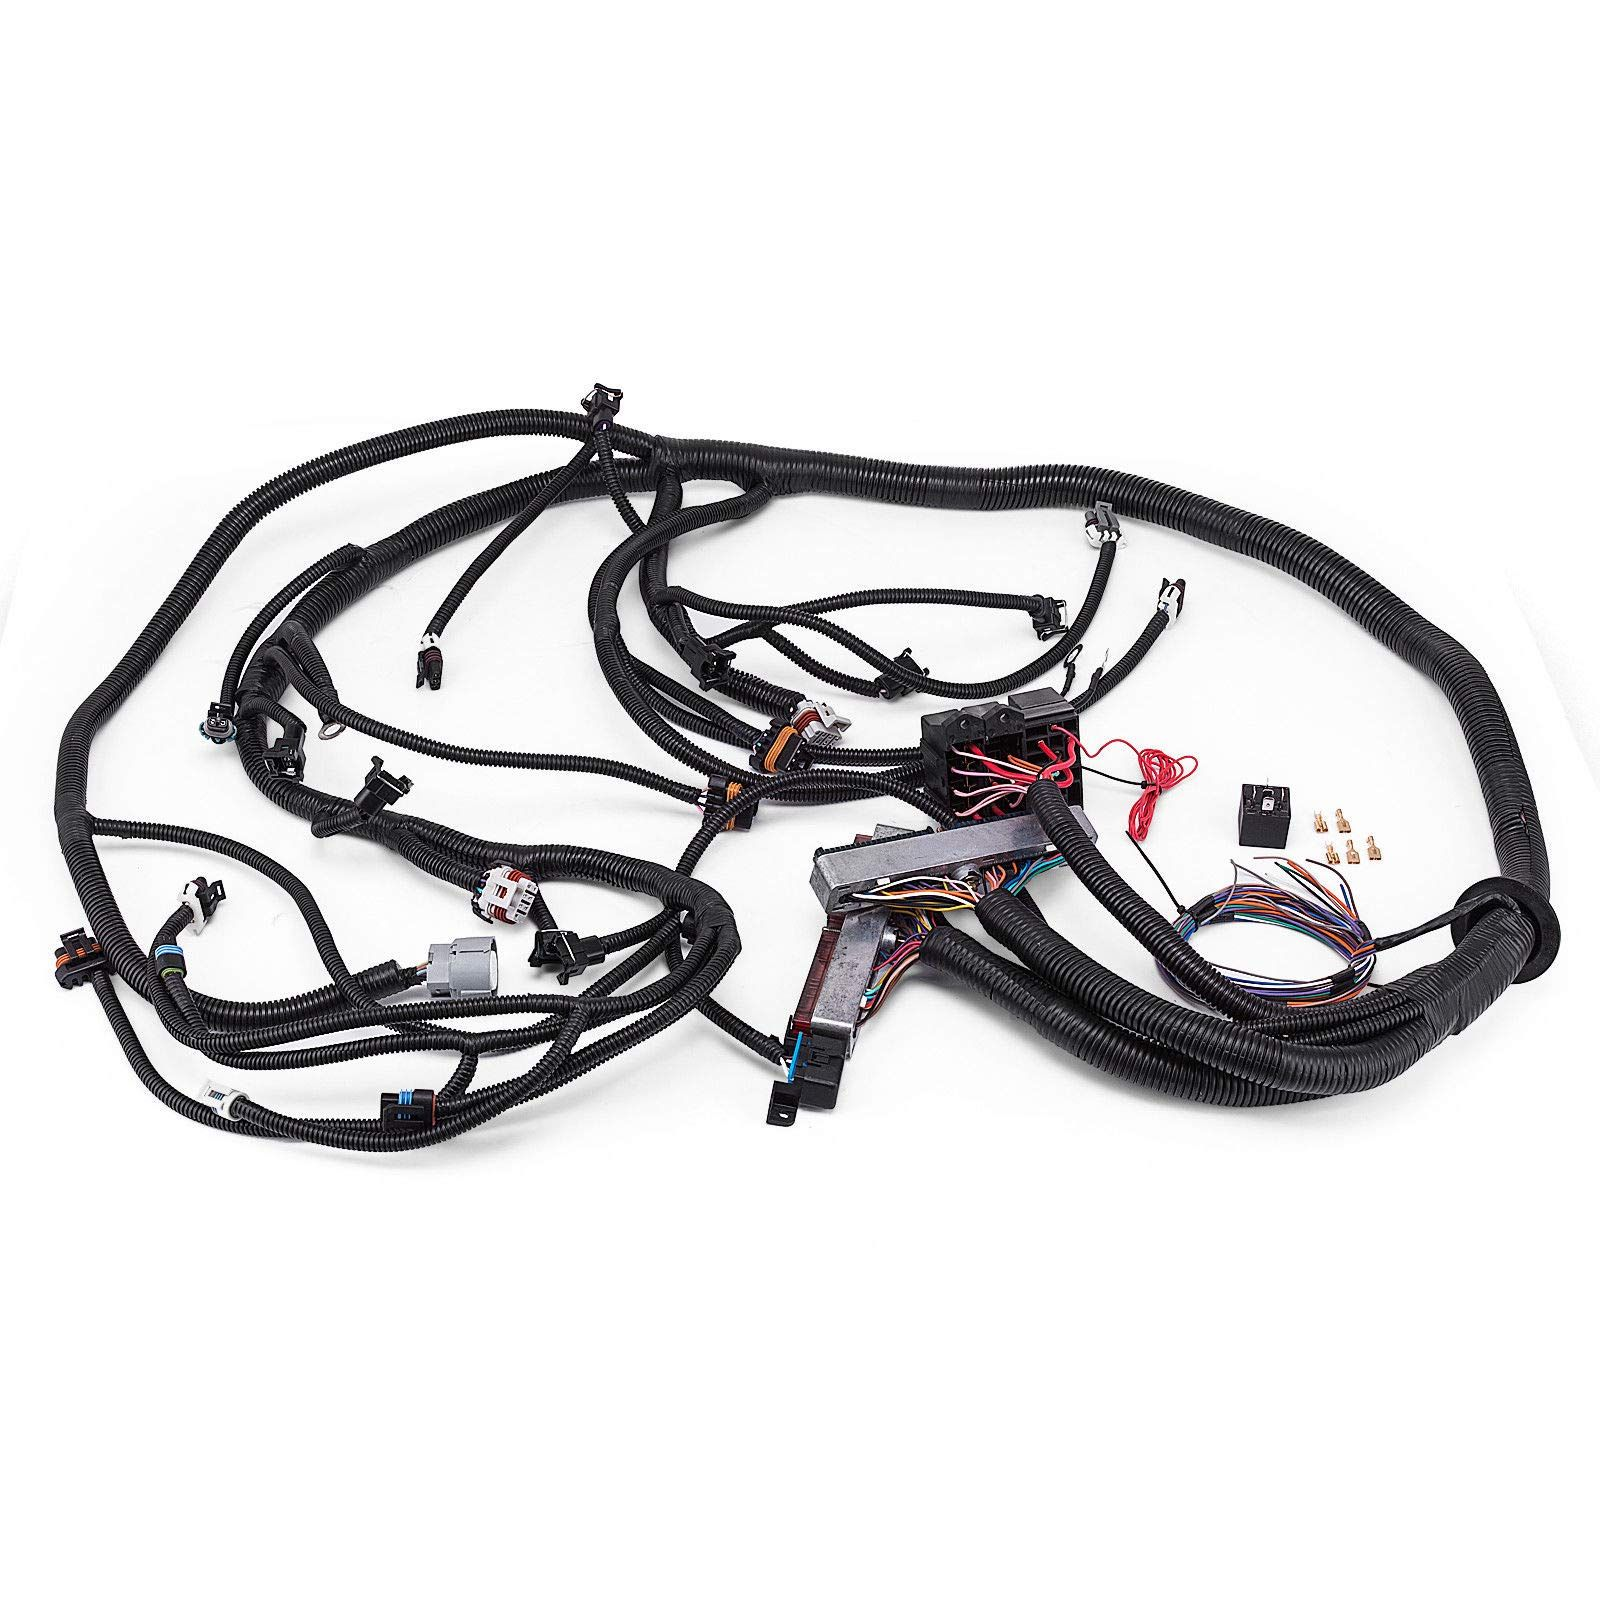 Wiring Harness To Transmission